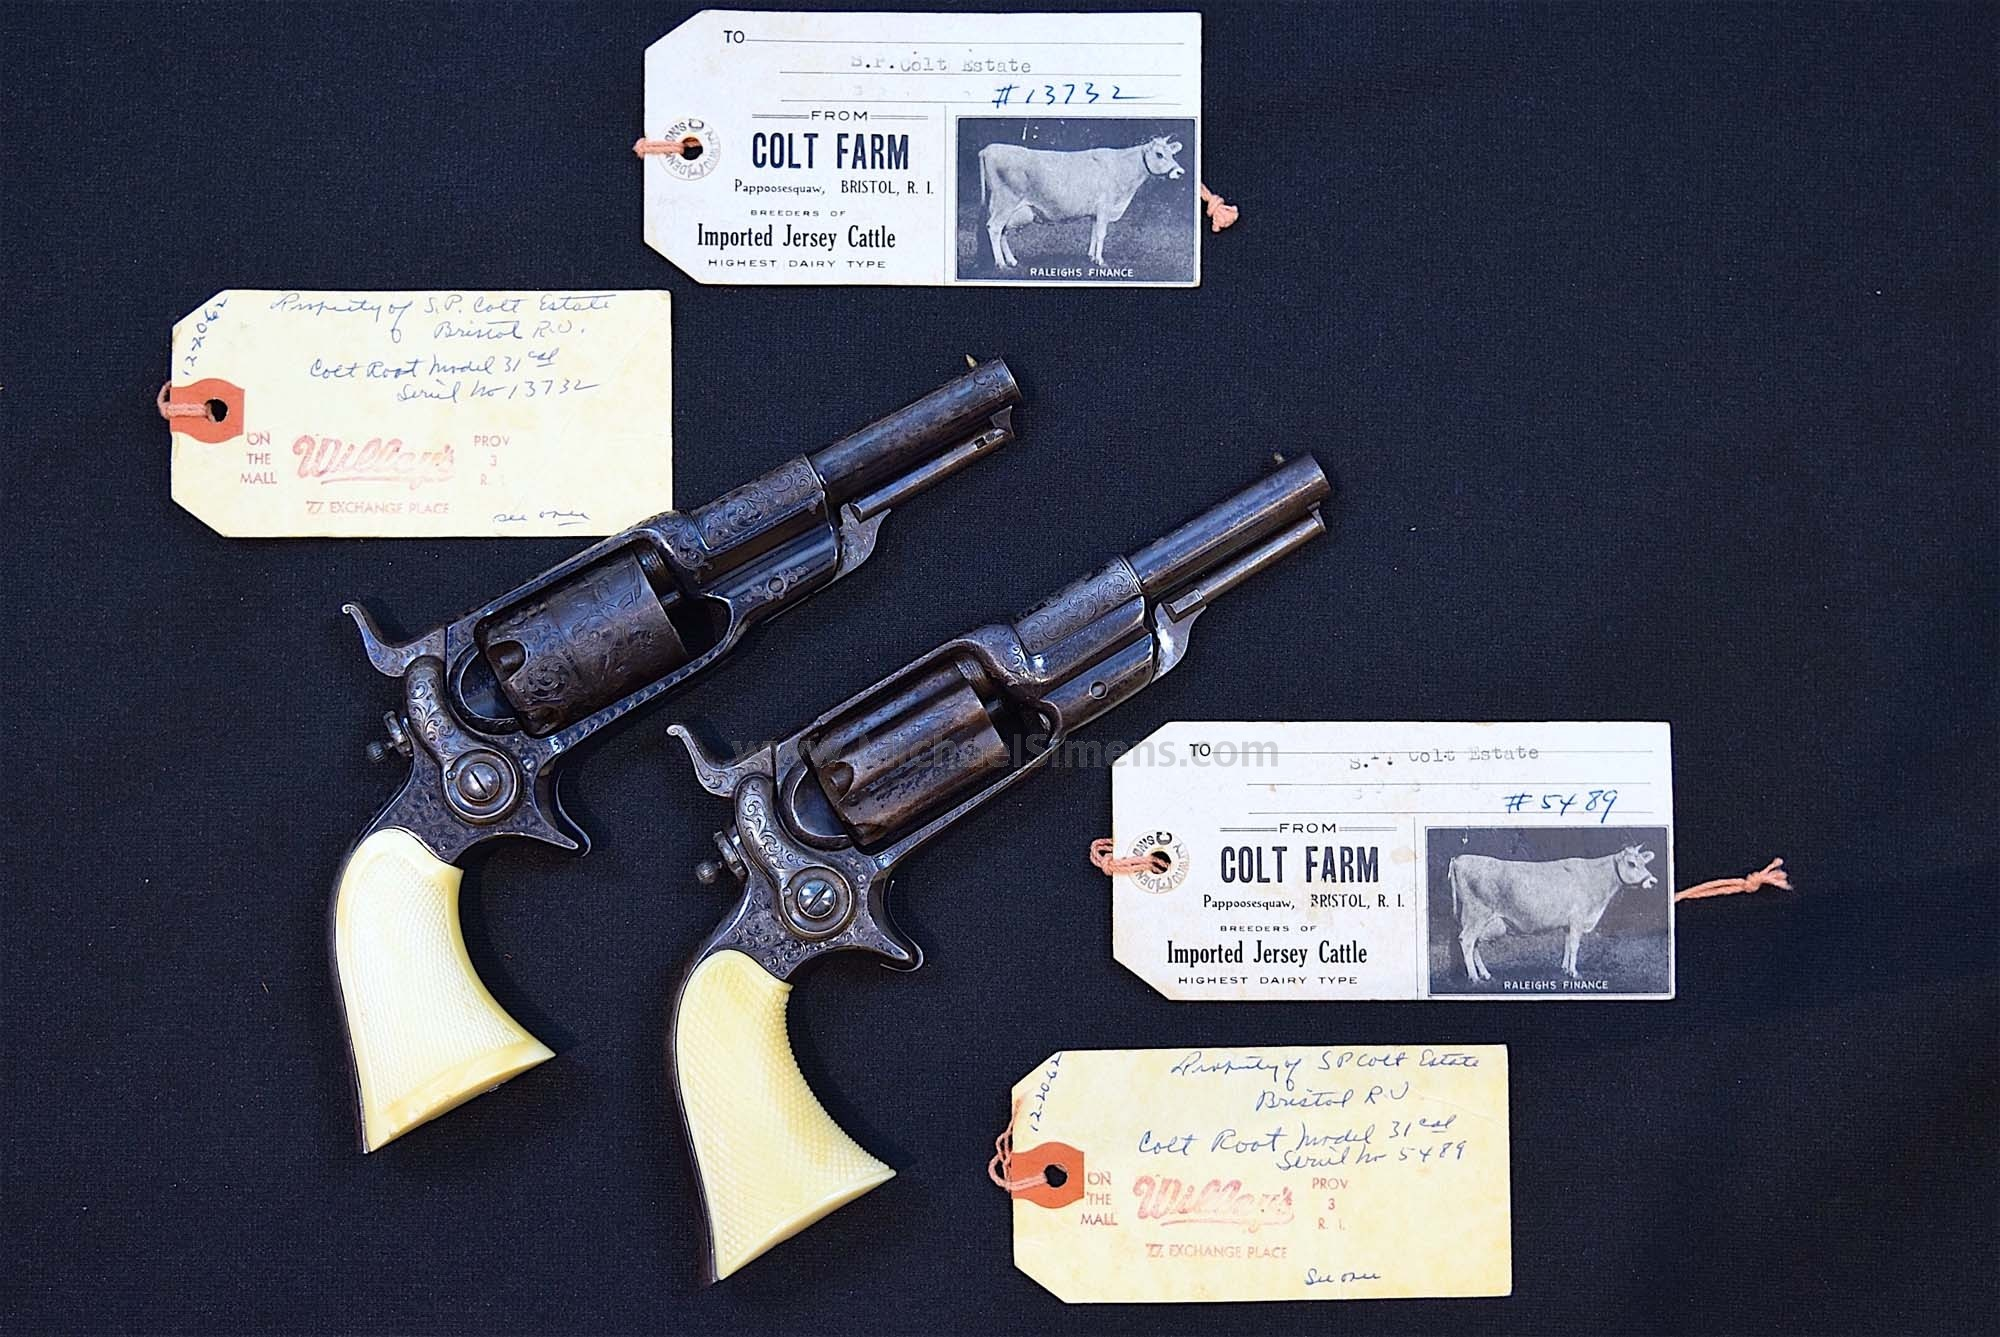 BEAUTIFUL ENGRAVED COLT ROOT REVOLVER OF SAMUEL POMEROY COLT